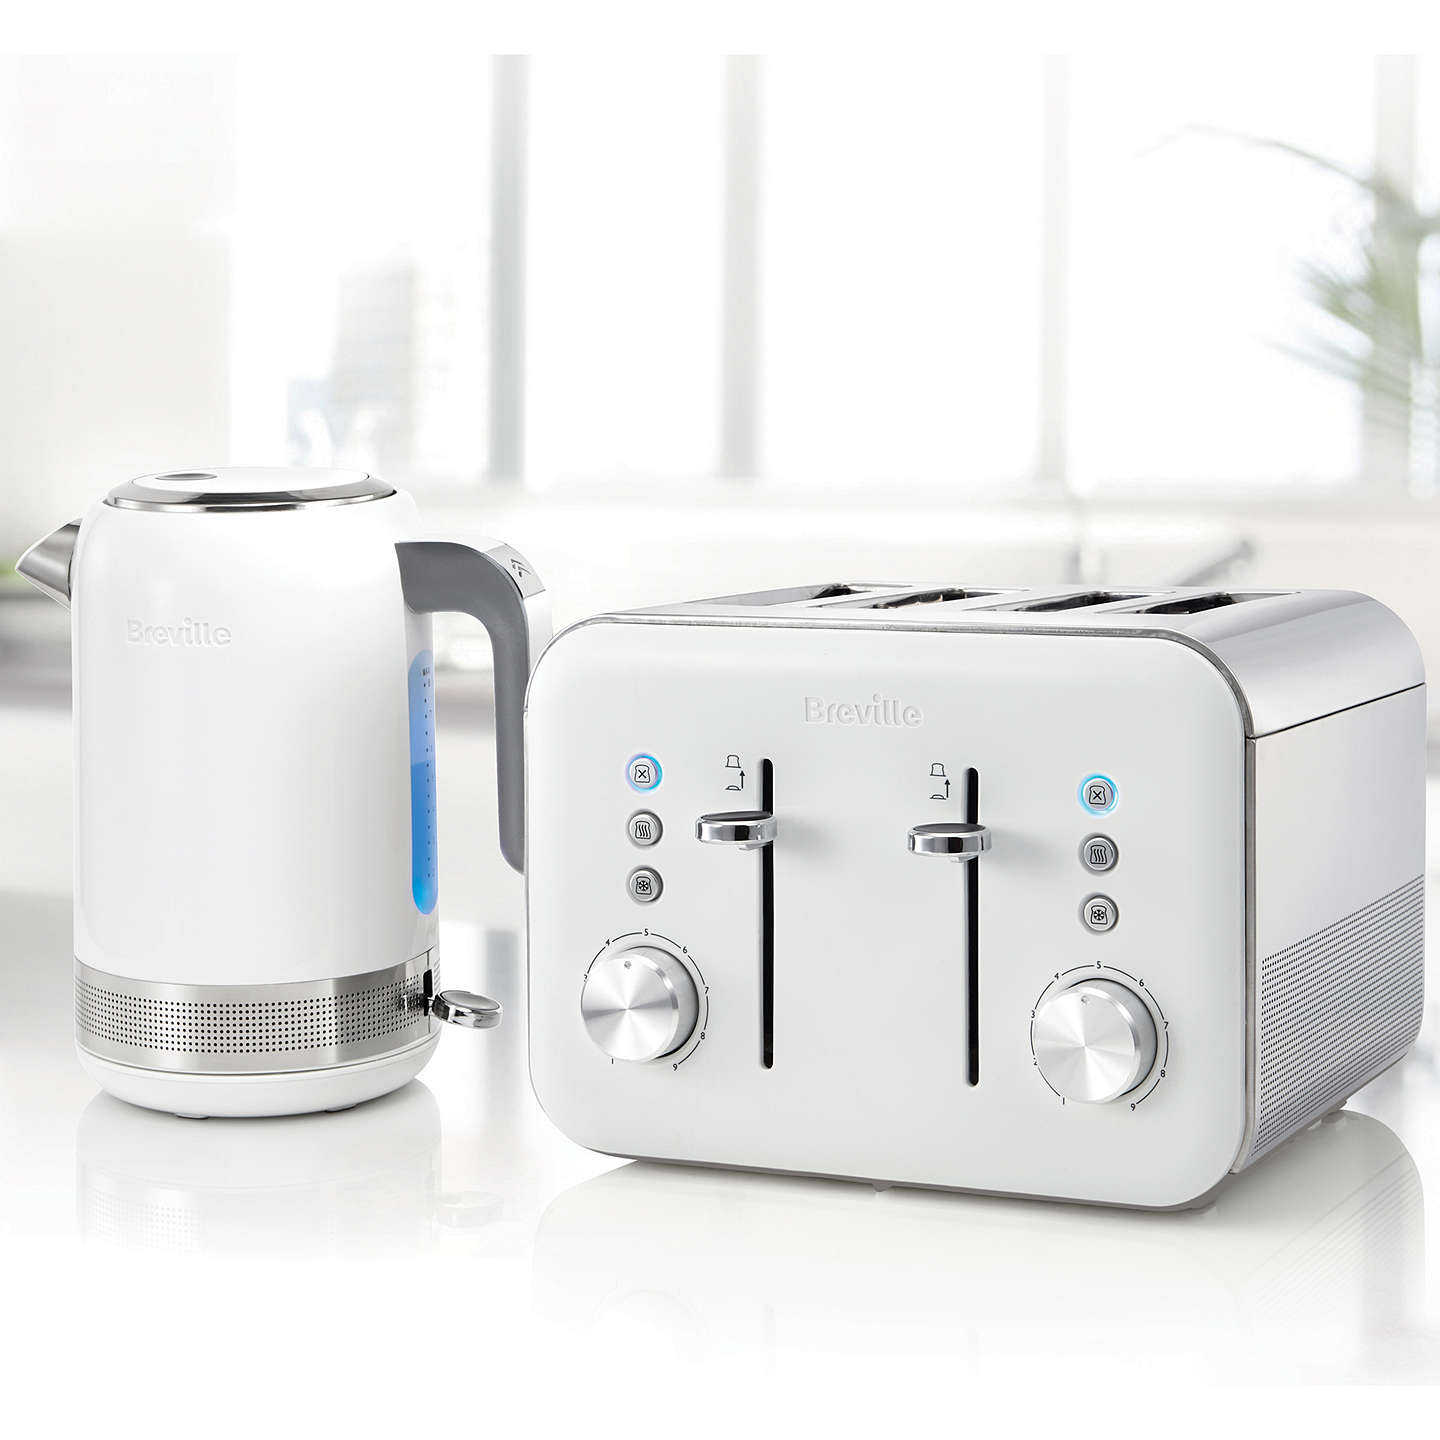 on gallery conique behance toaster alessi